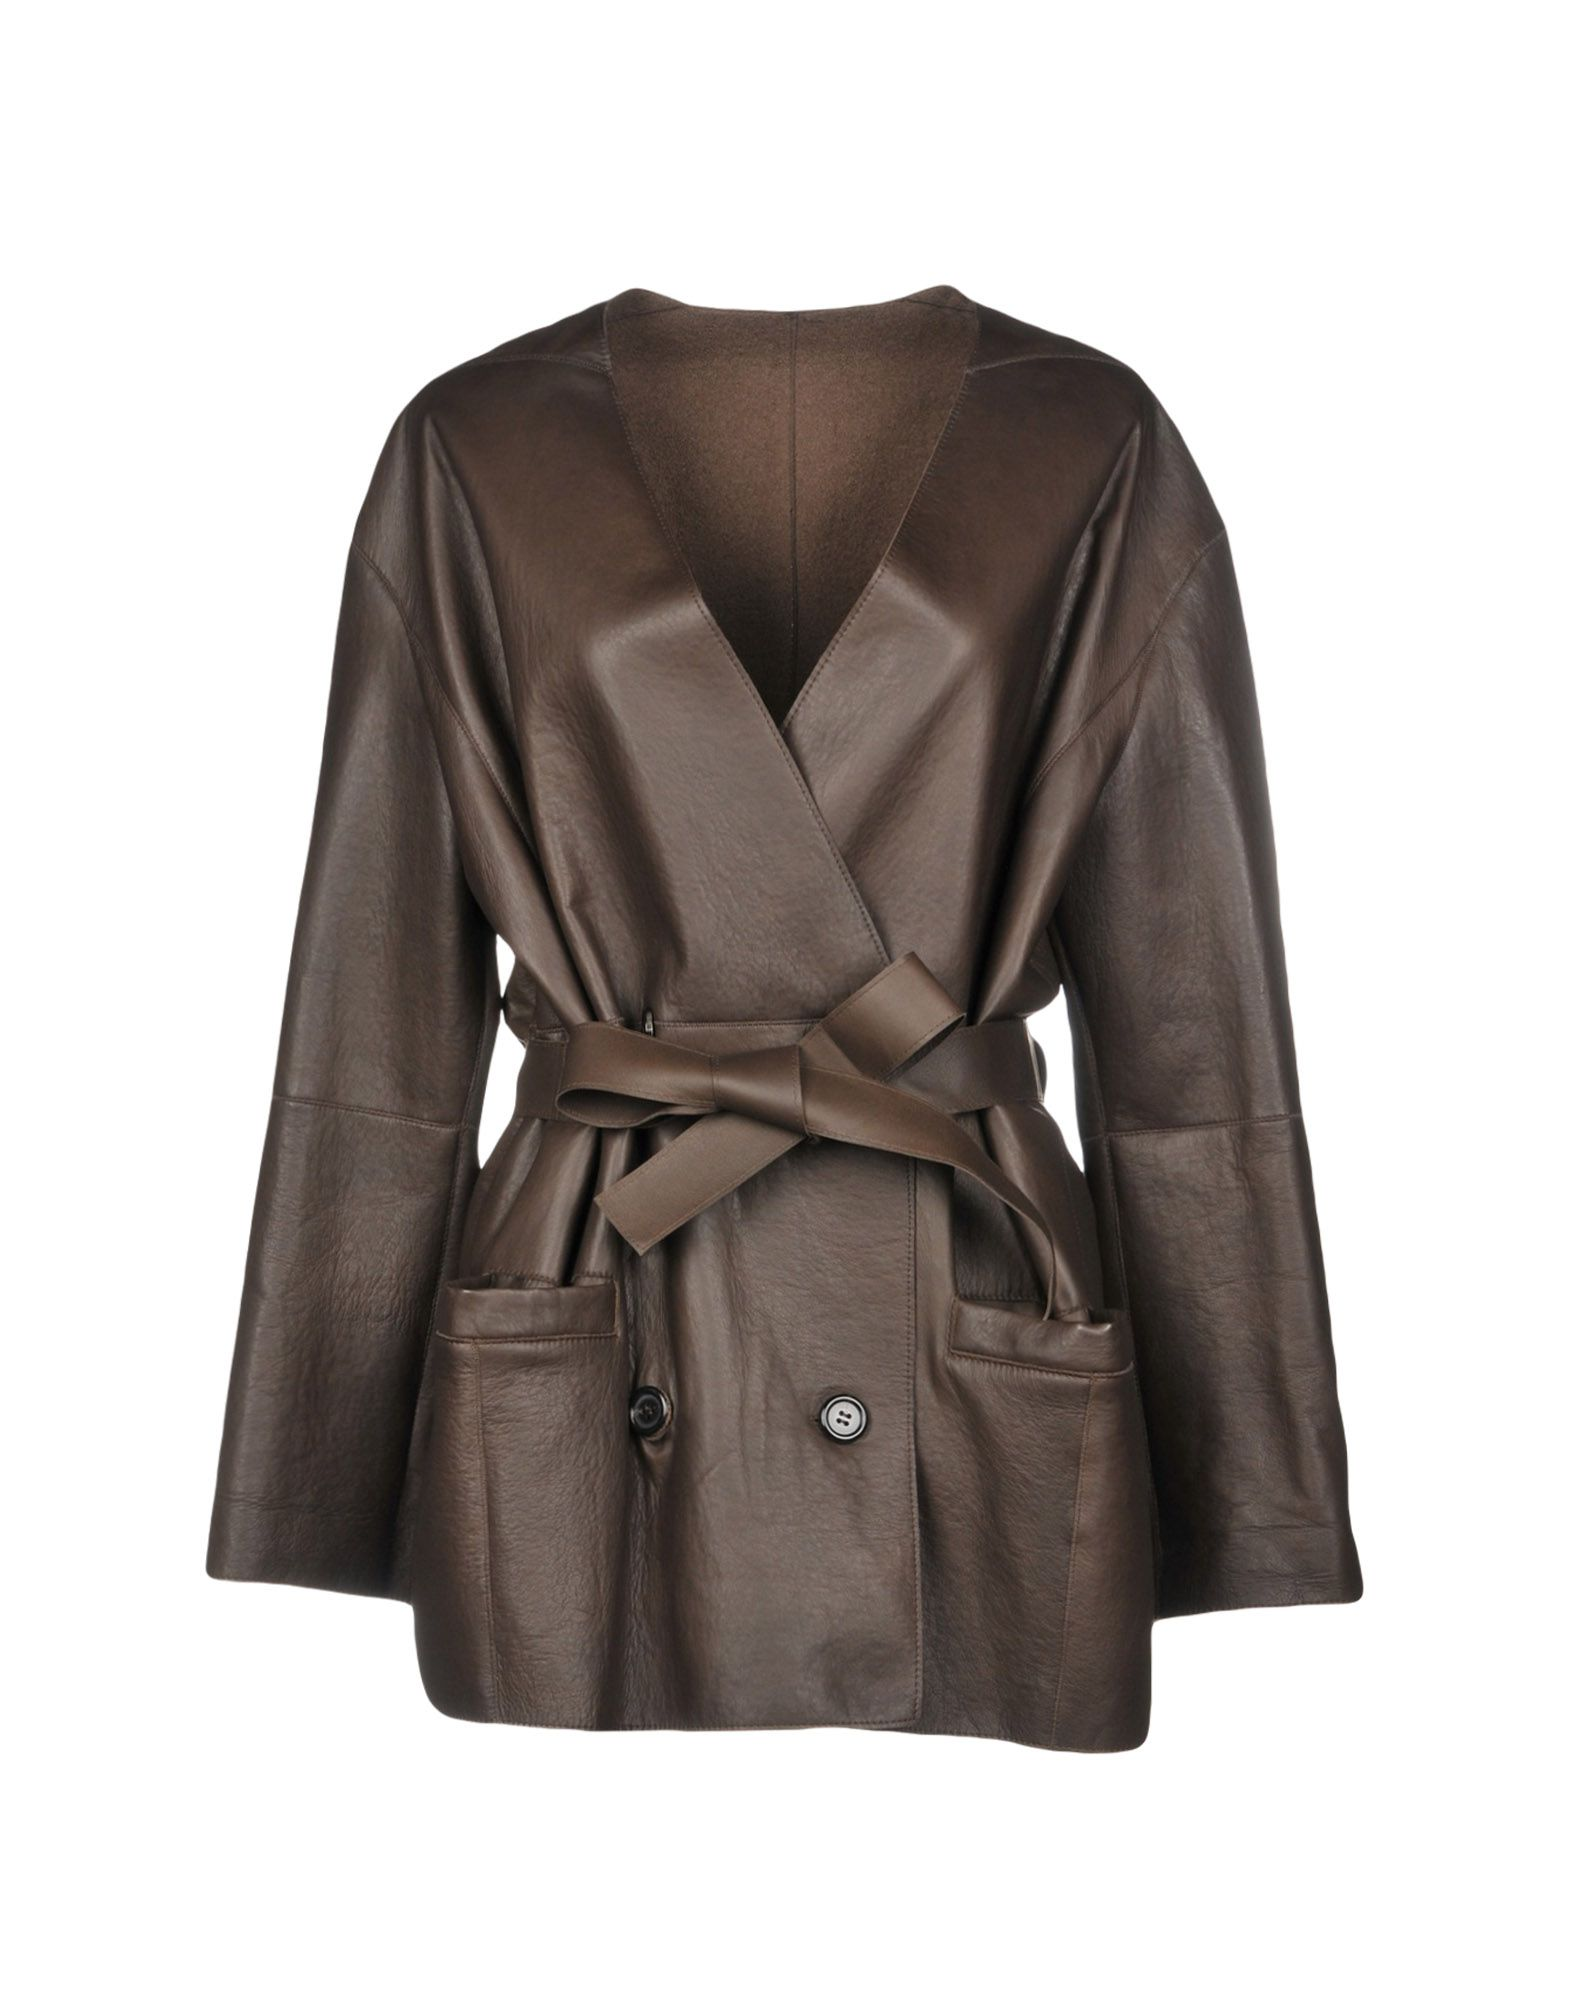 LIVEN Double Breasted Pea Coat in Dark Brown